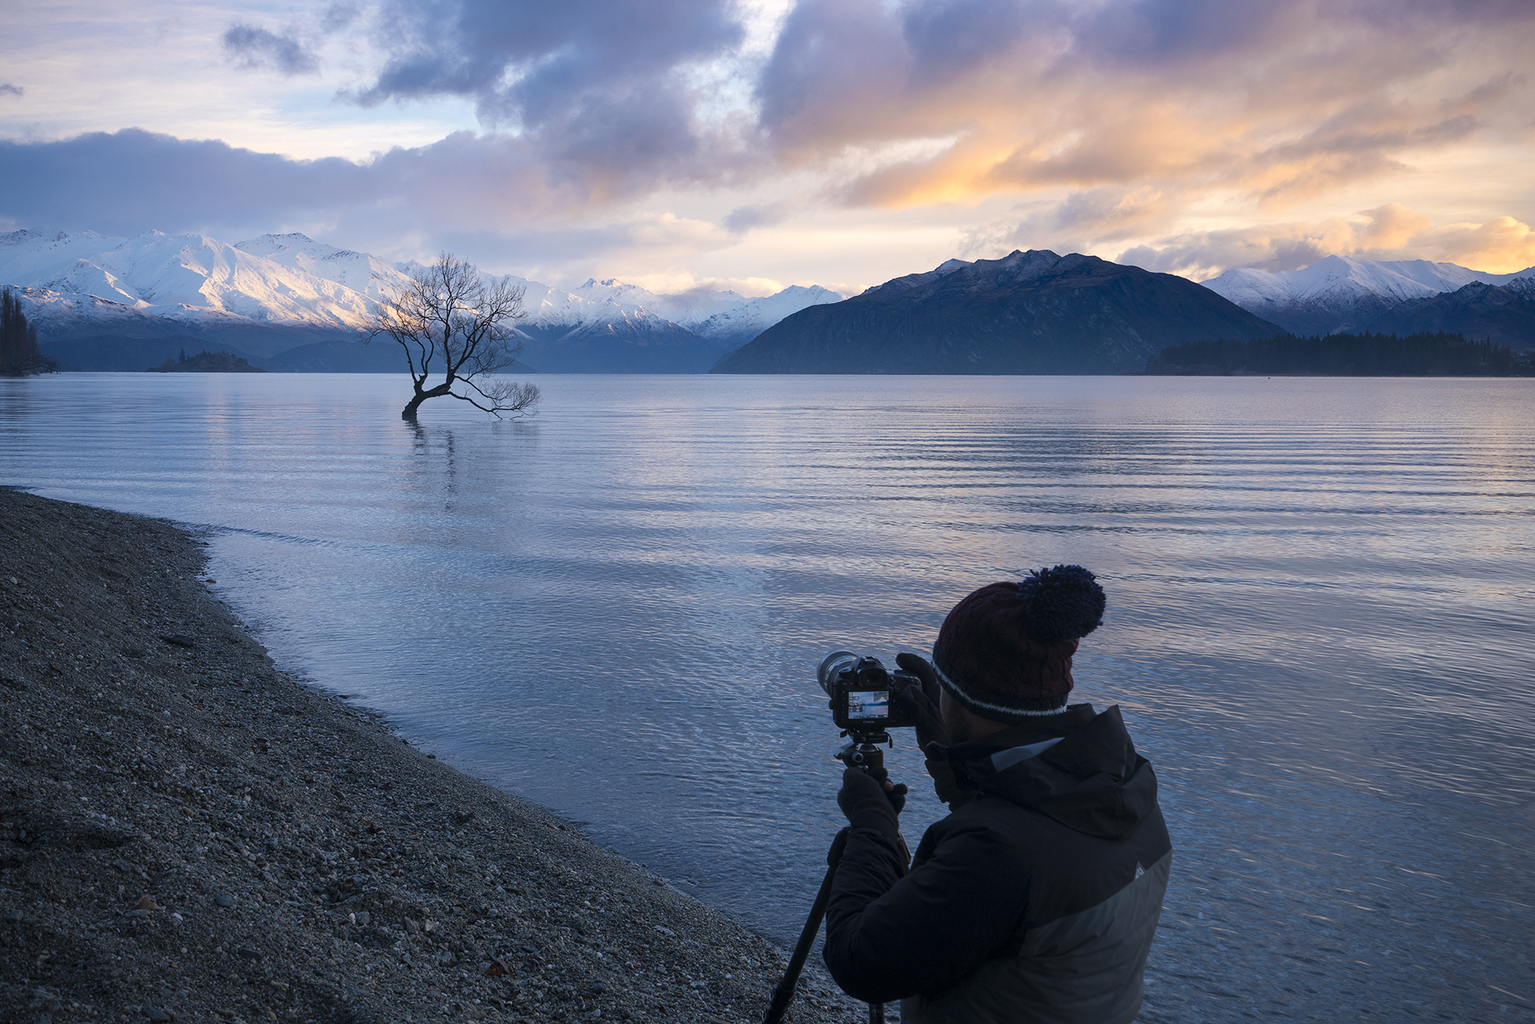 Photographing the Wanaka tree